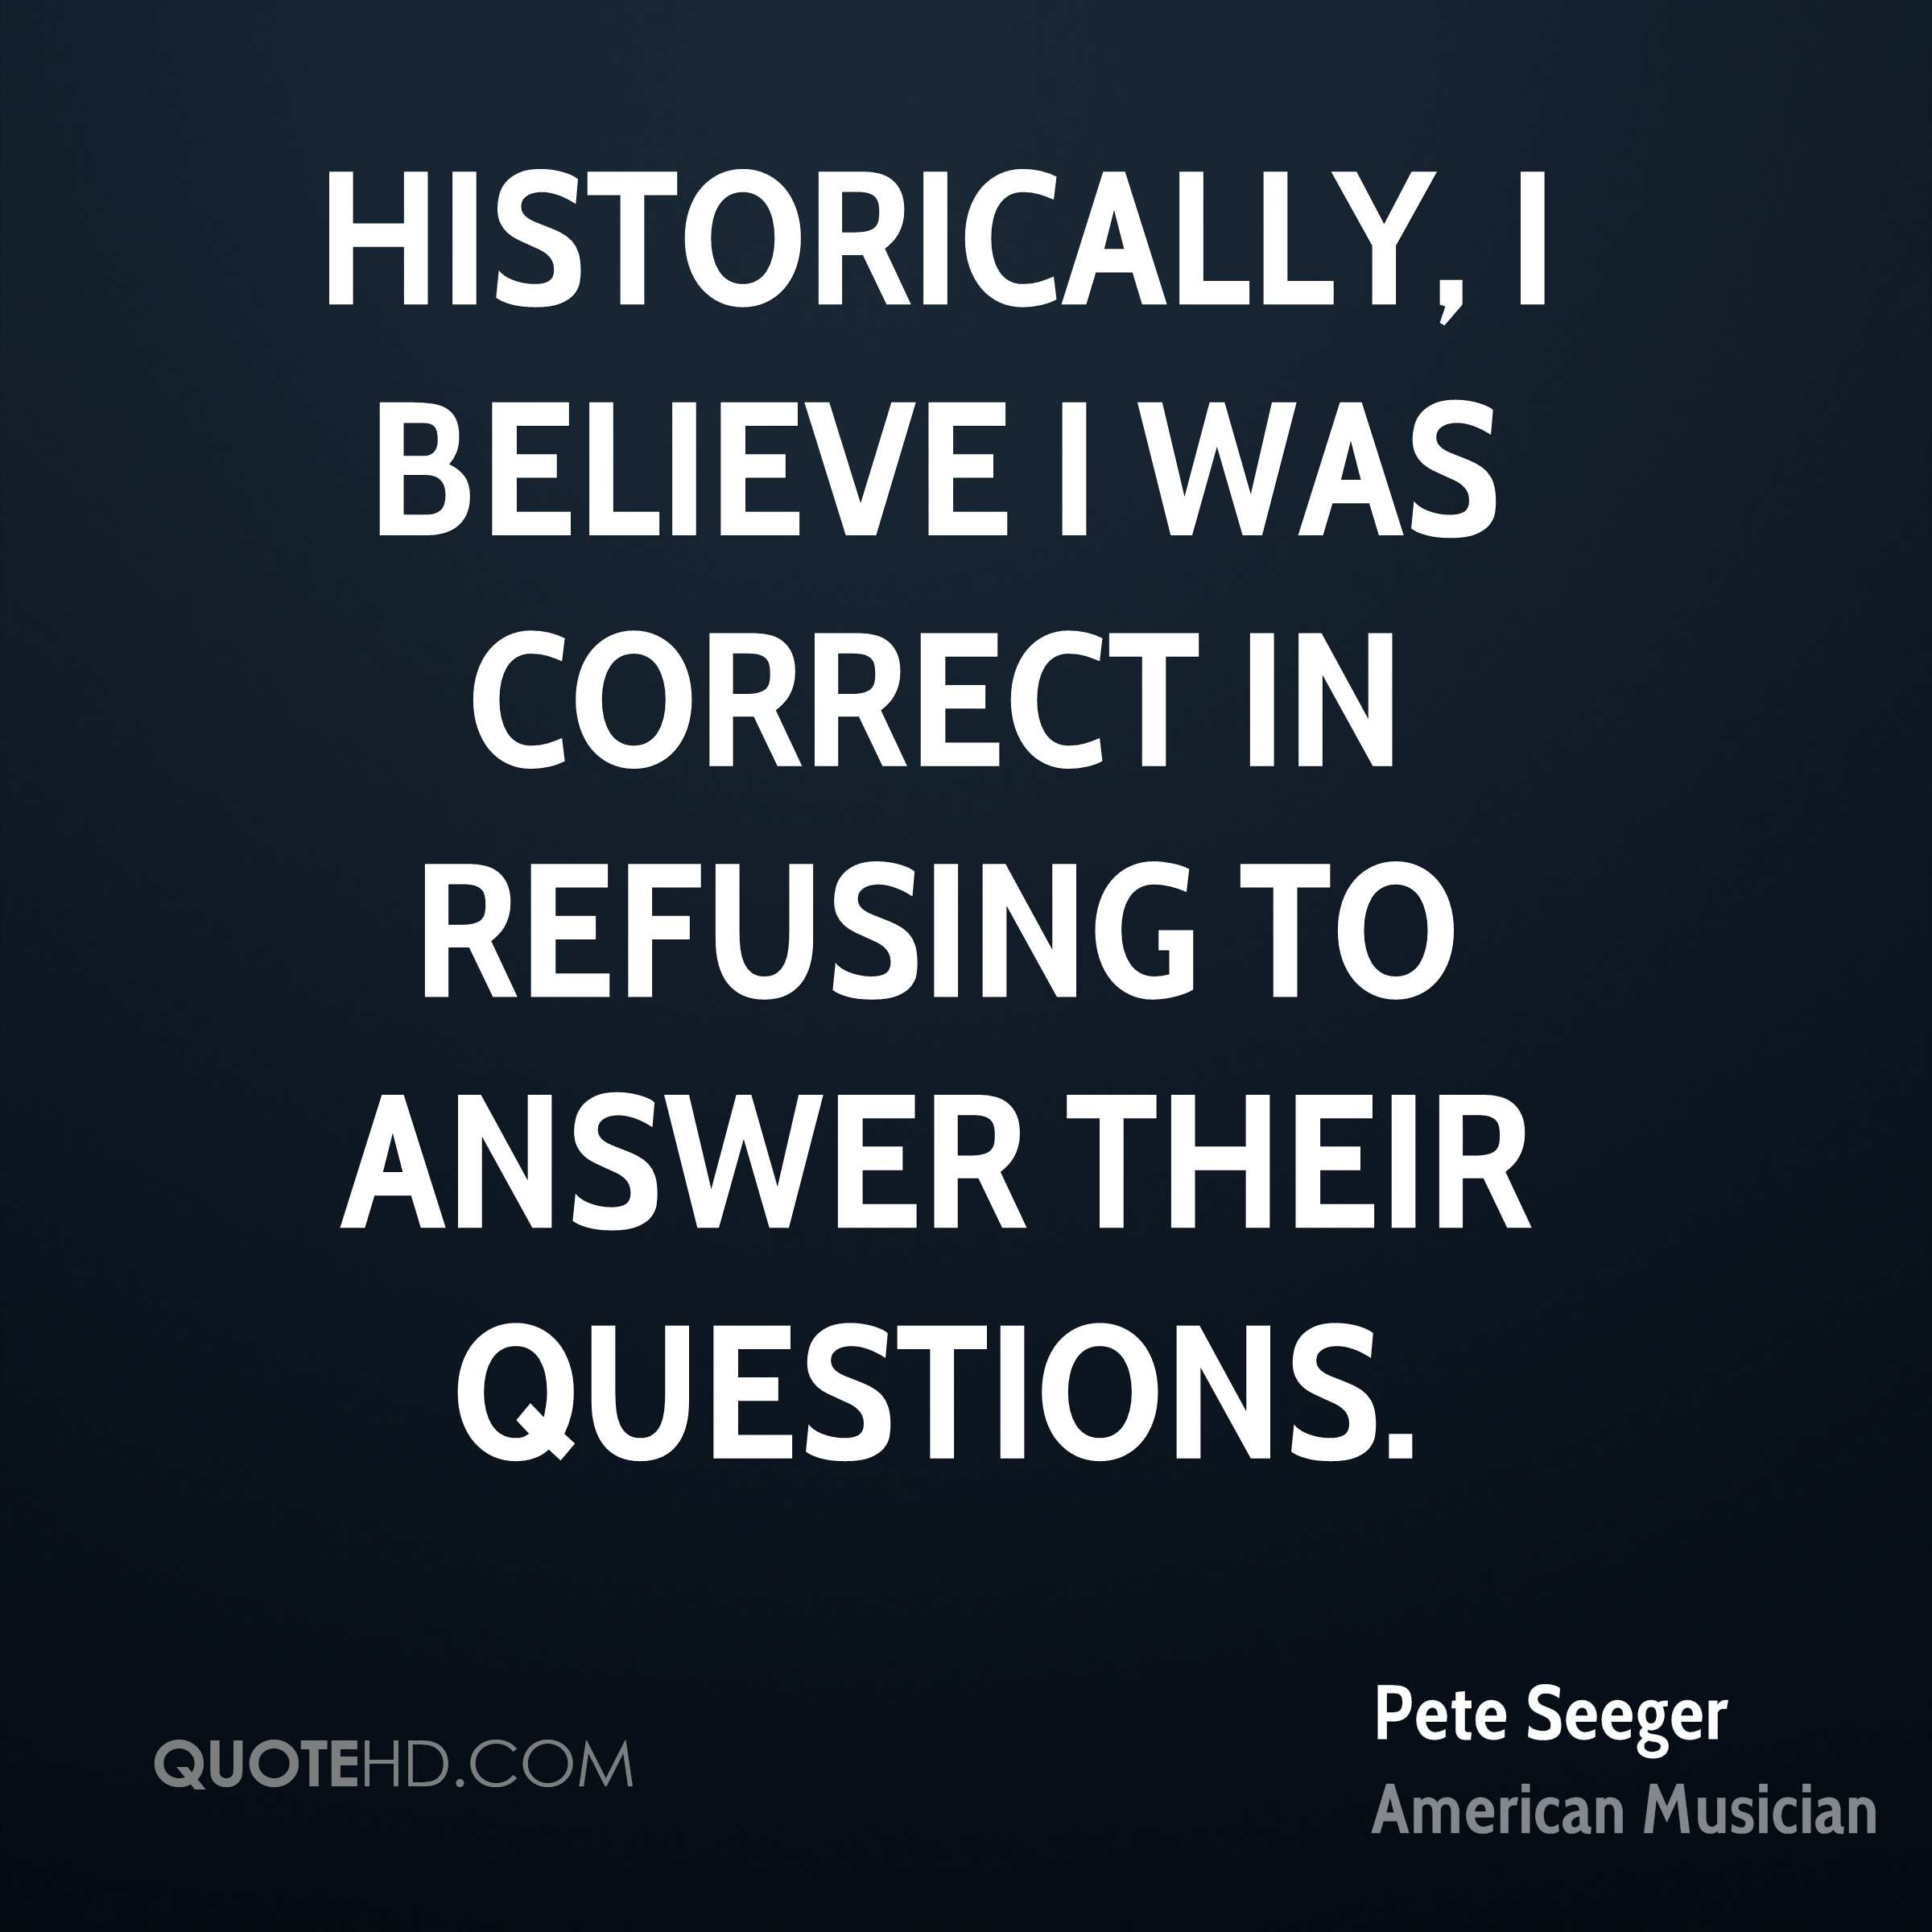 Historically, I believe I was correct in refusing to answer their questions.